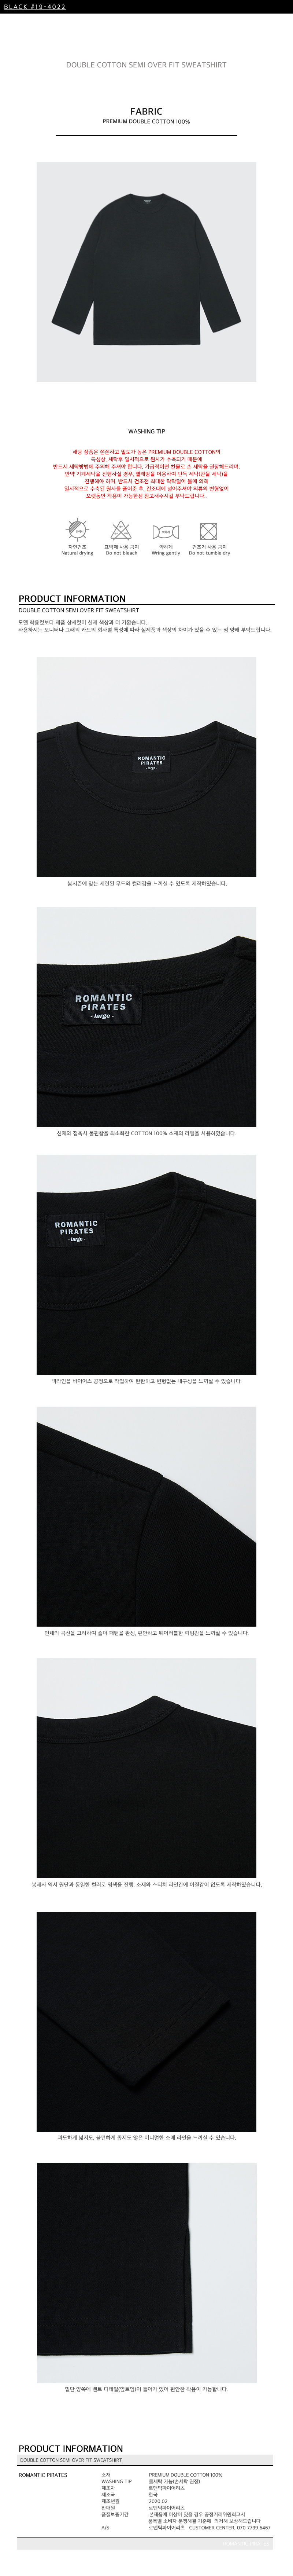 로맨틱 파이어리츠(ROMANTICPIRATES) DOUBLE COTTON SWEATSHIRT(BLACK)